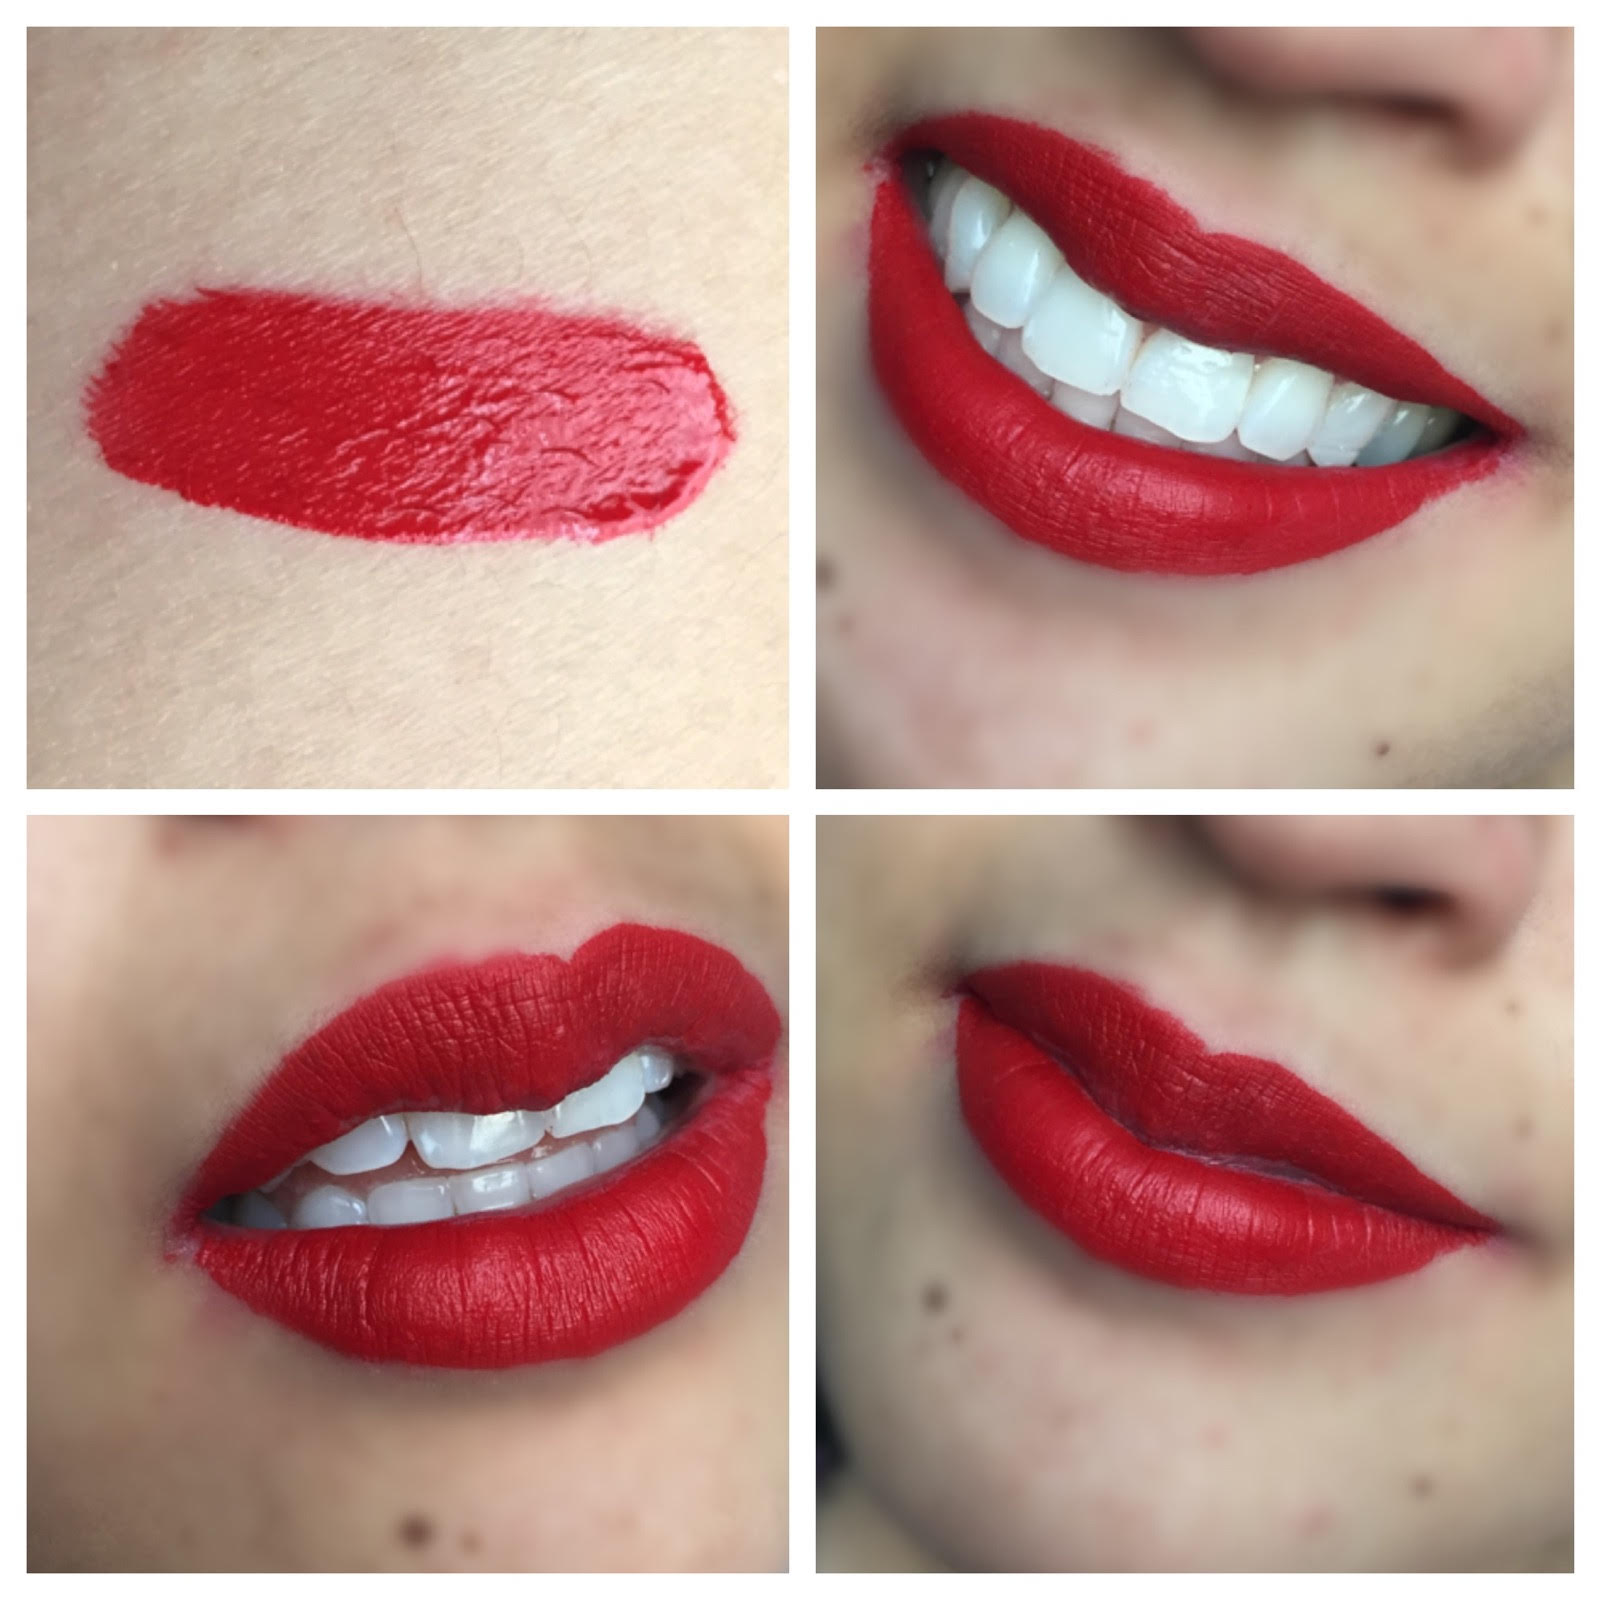 Ticklemebear june 2015 How to get rid of red lipstick stain